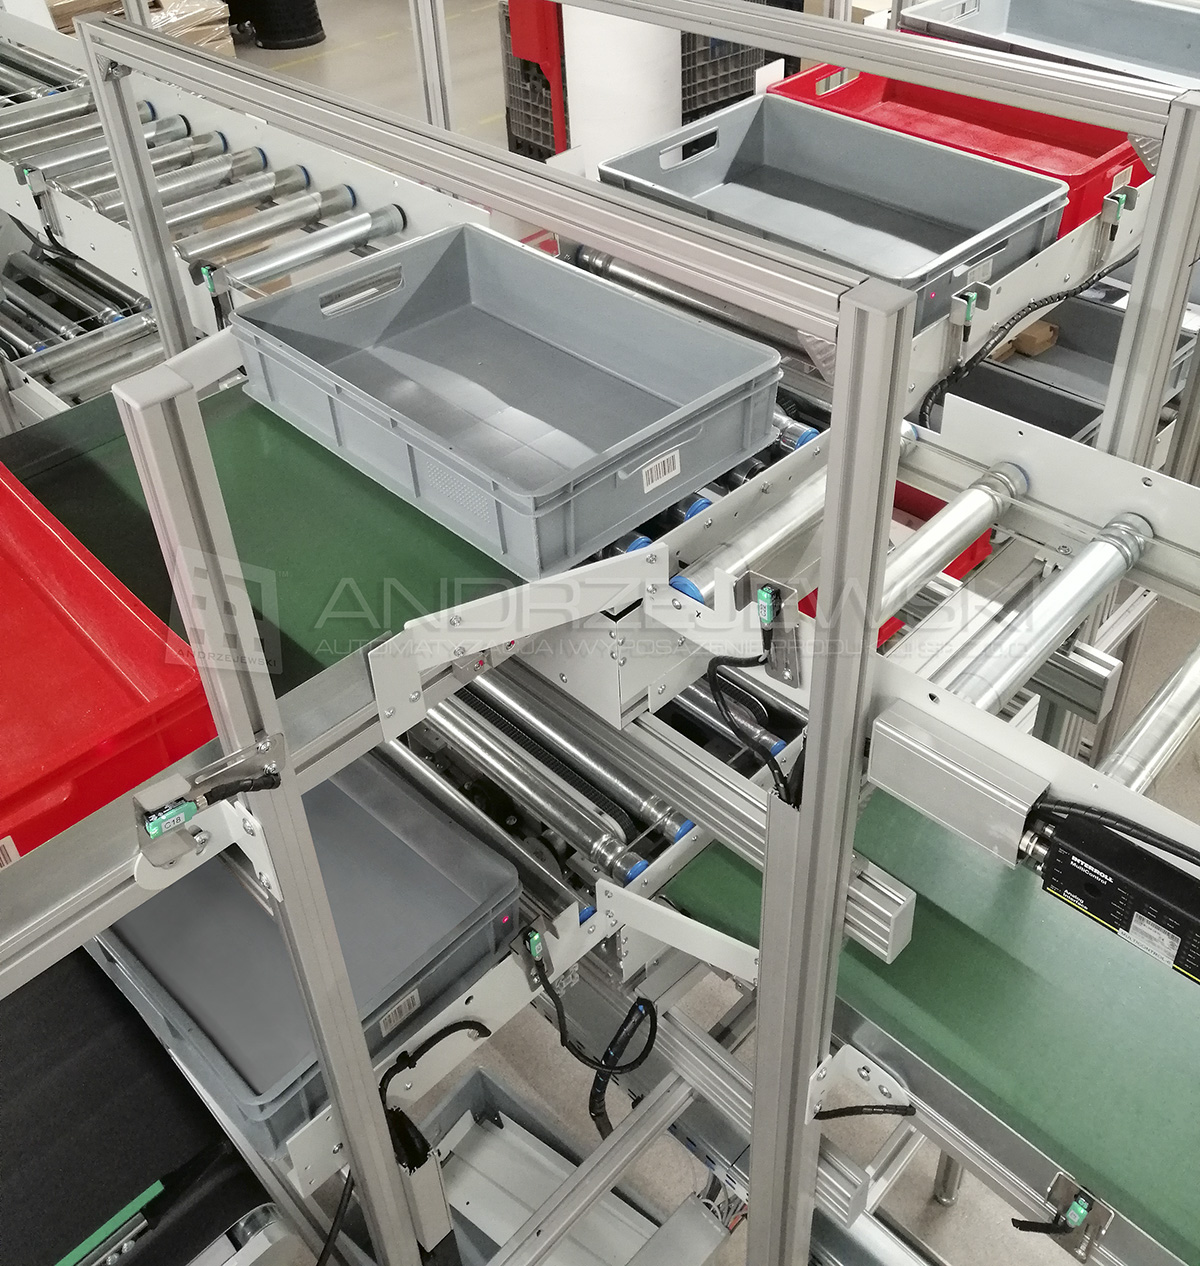 12. Conveyor system for internal transport of products between machines